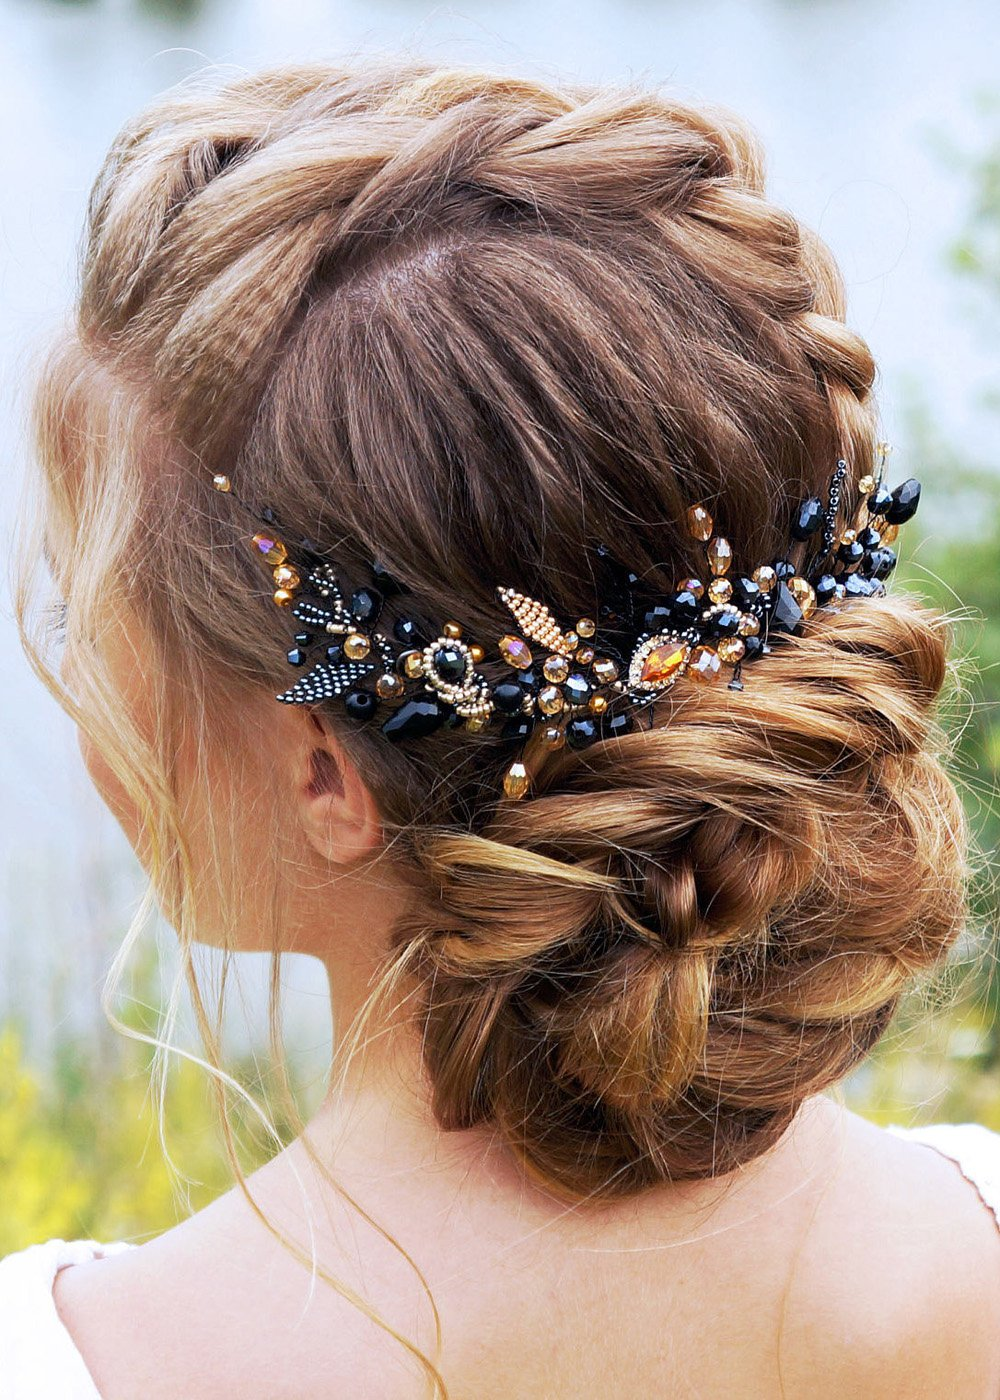 Kercisbeauty Wedding Bridal Bridesmaids Black and Champagne Crystal Beads Long Chain Hair Comb Headband Bridal Hair Comb Slide Headpiece Long Curly Bun Hair Accessories for Prom